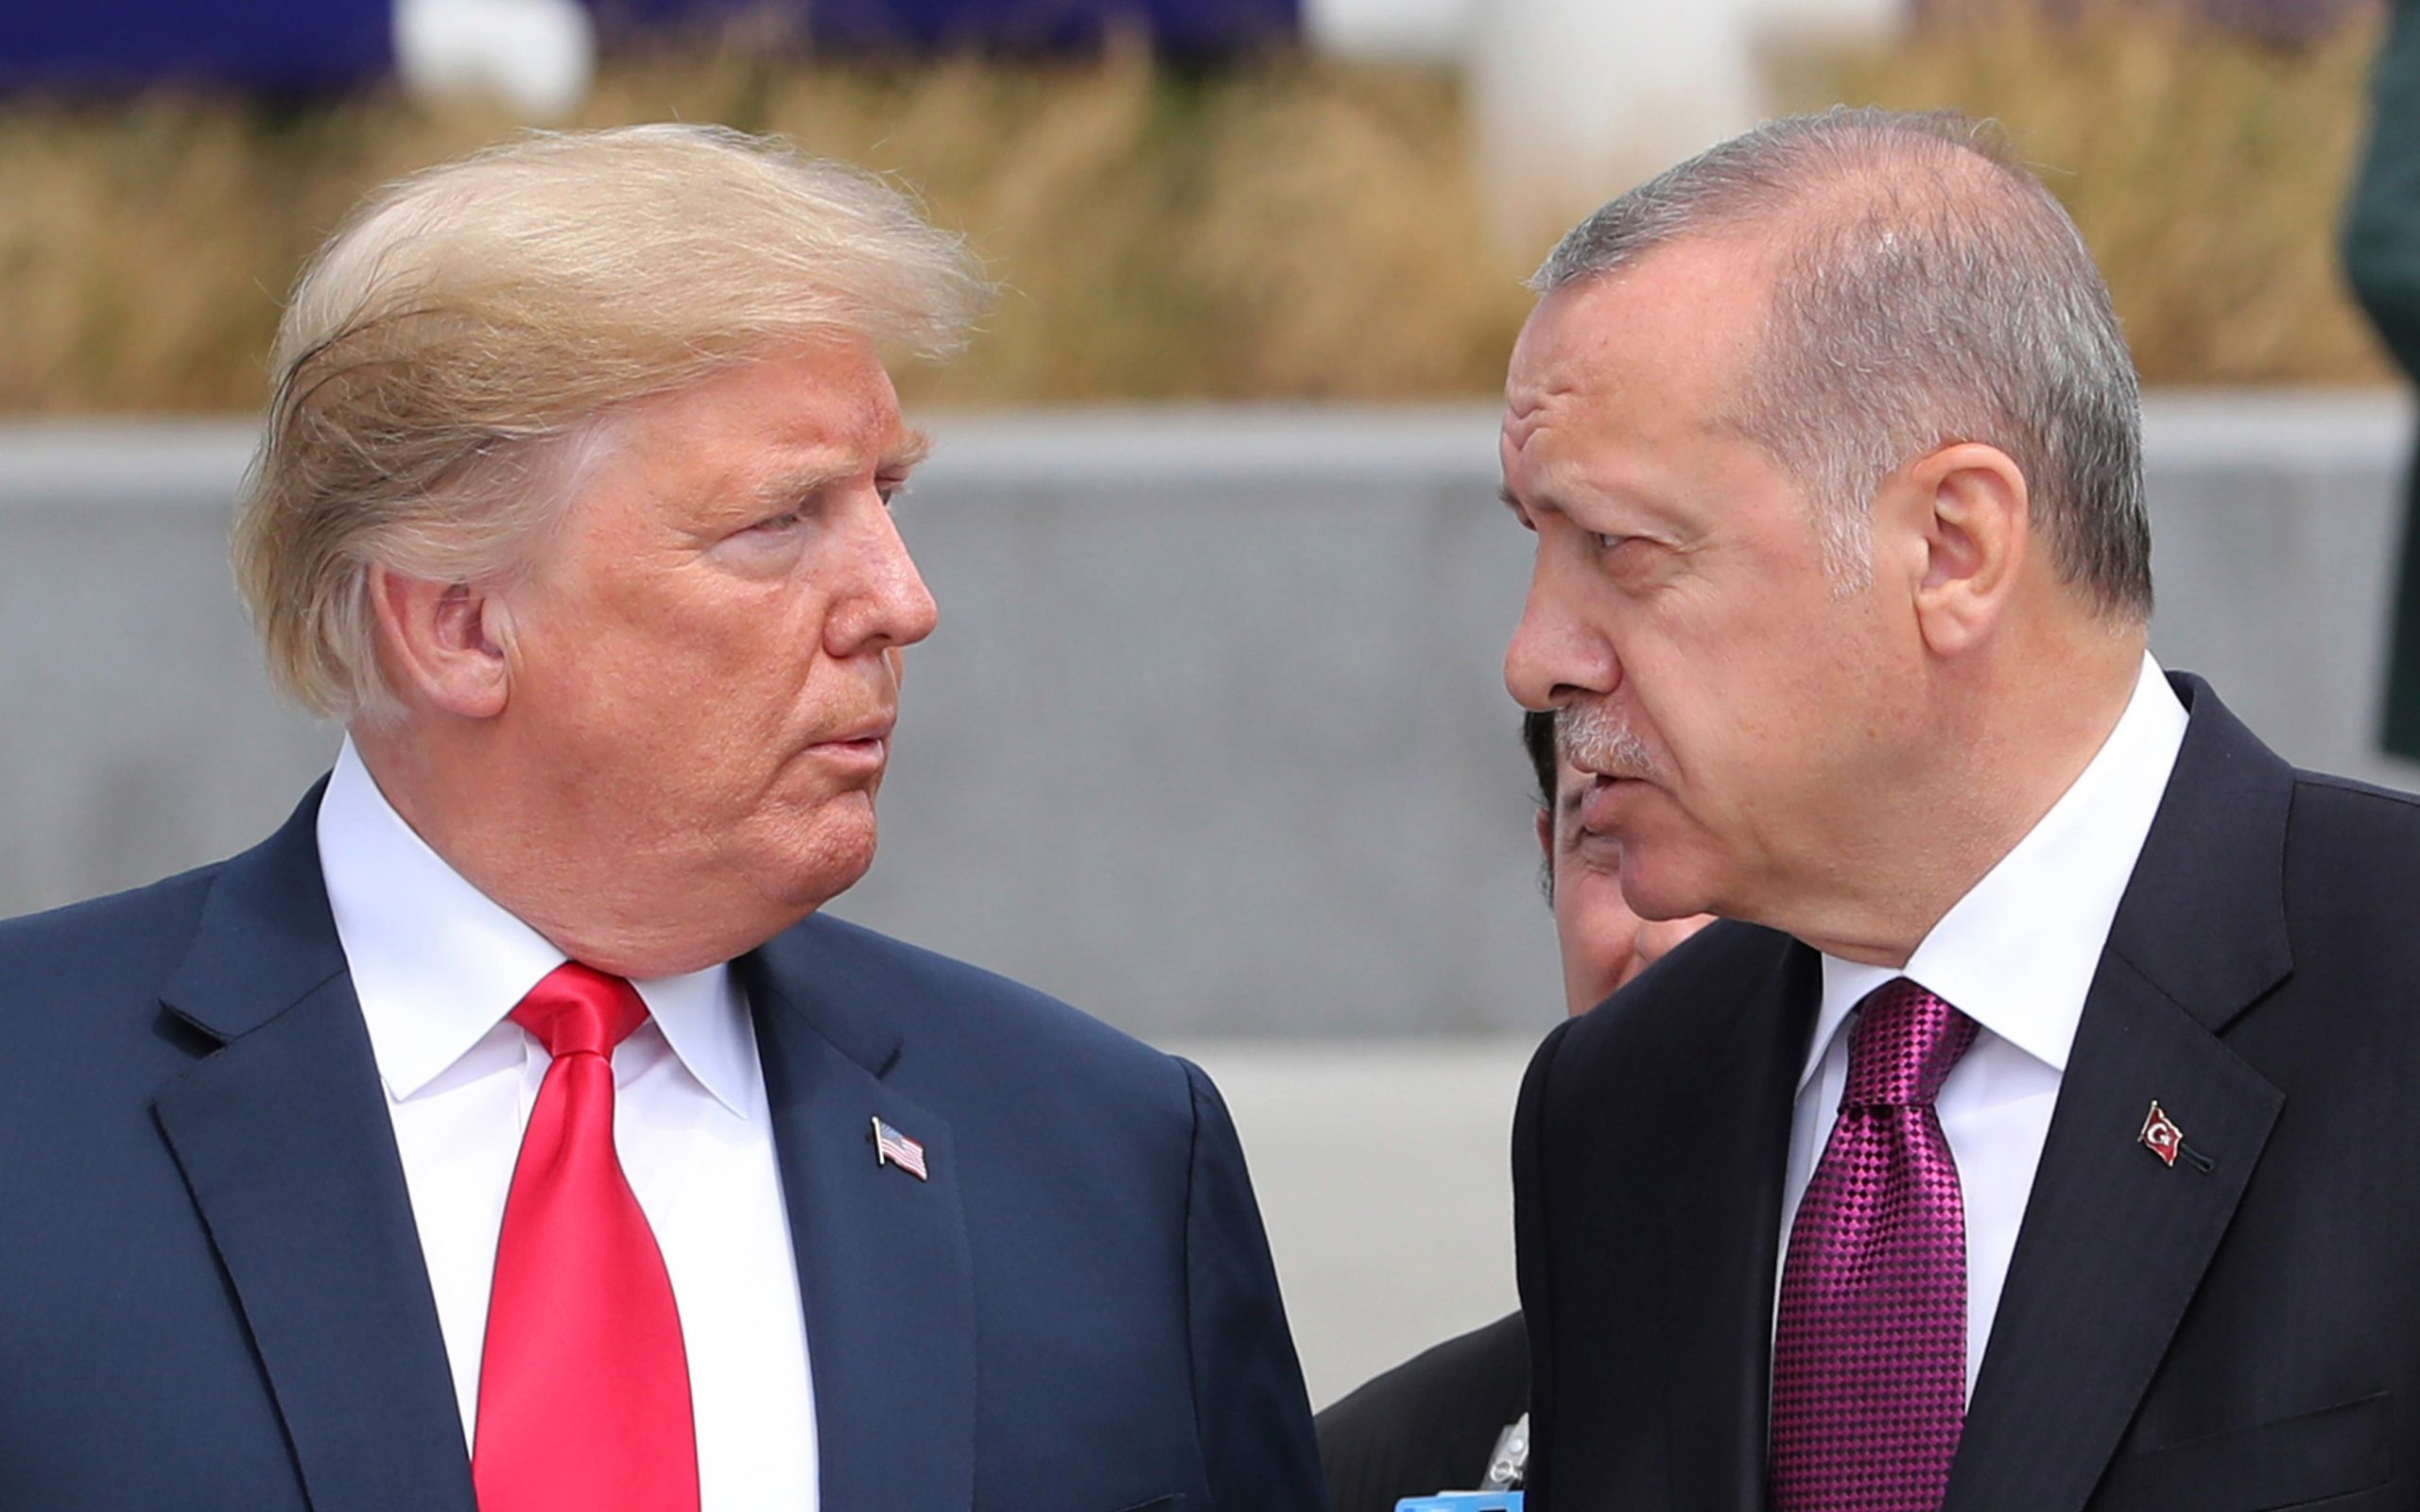 Erdogan took offense at Trump because of sanctions for the purchase of S-400